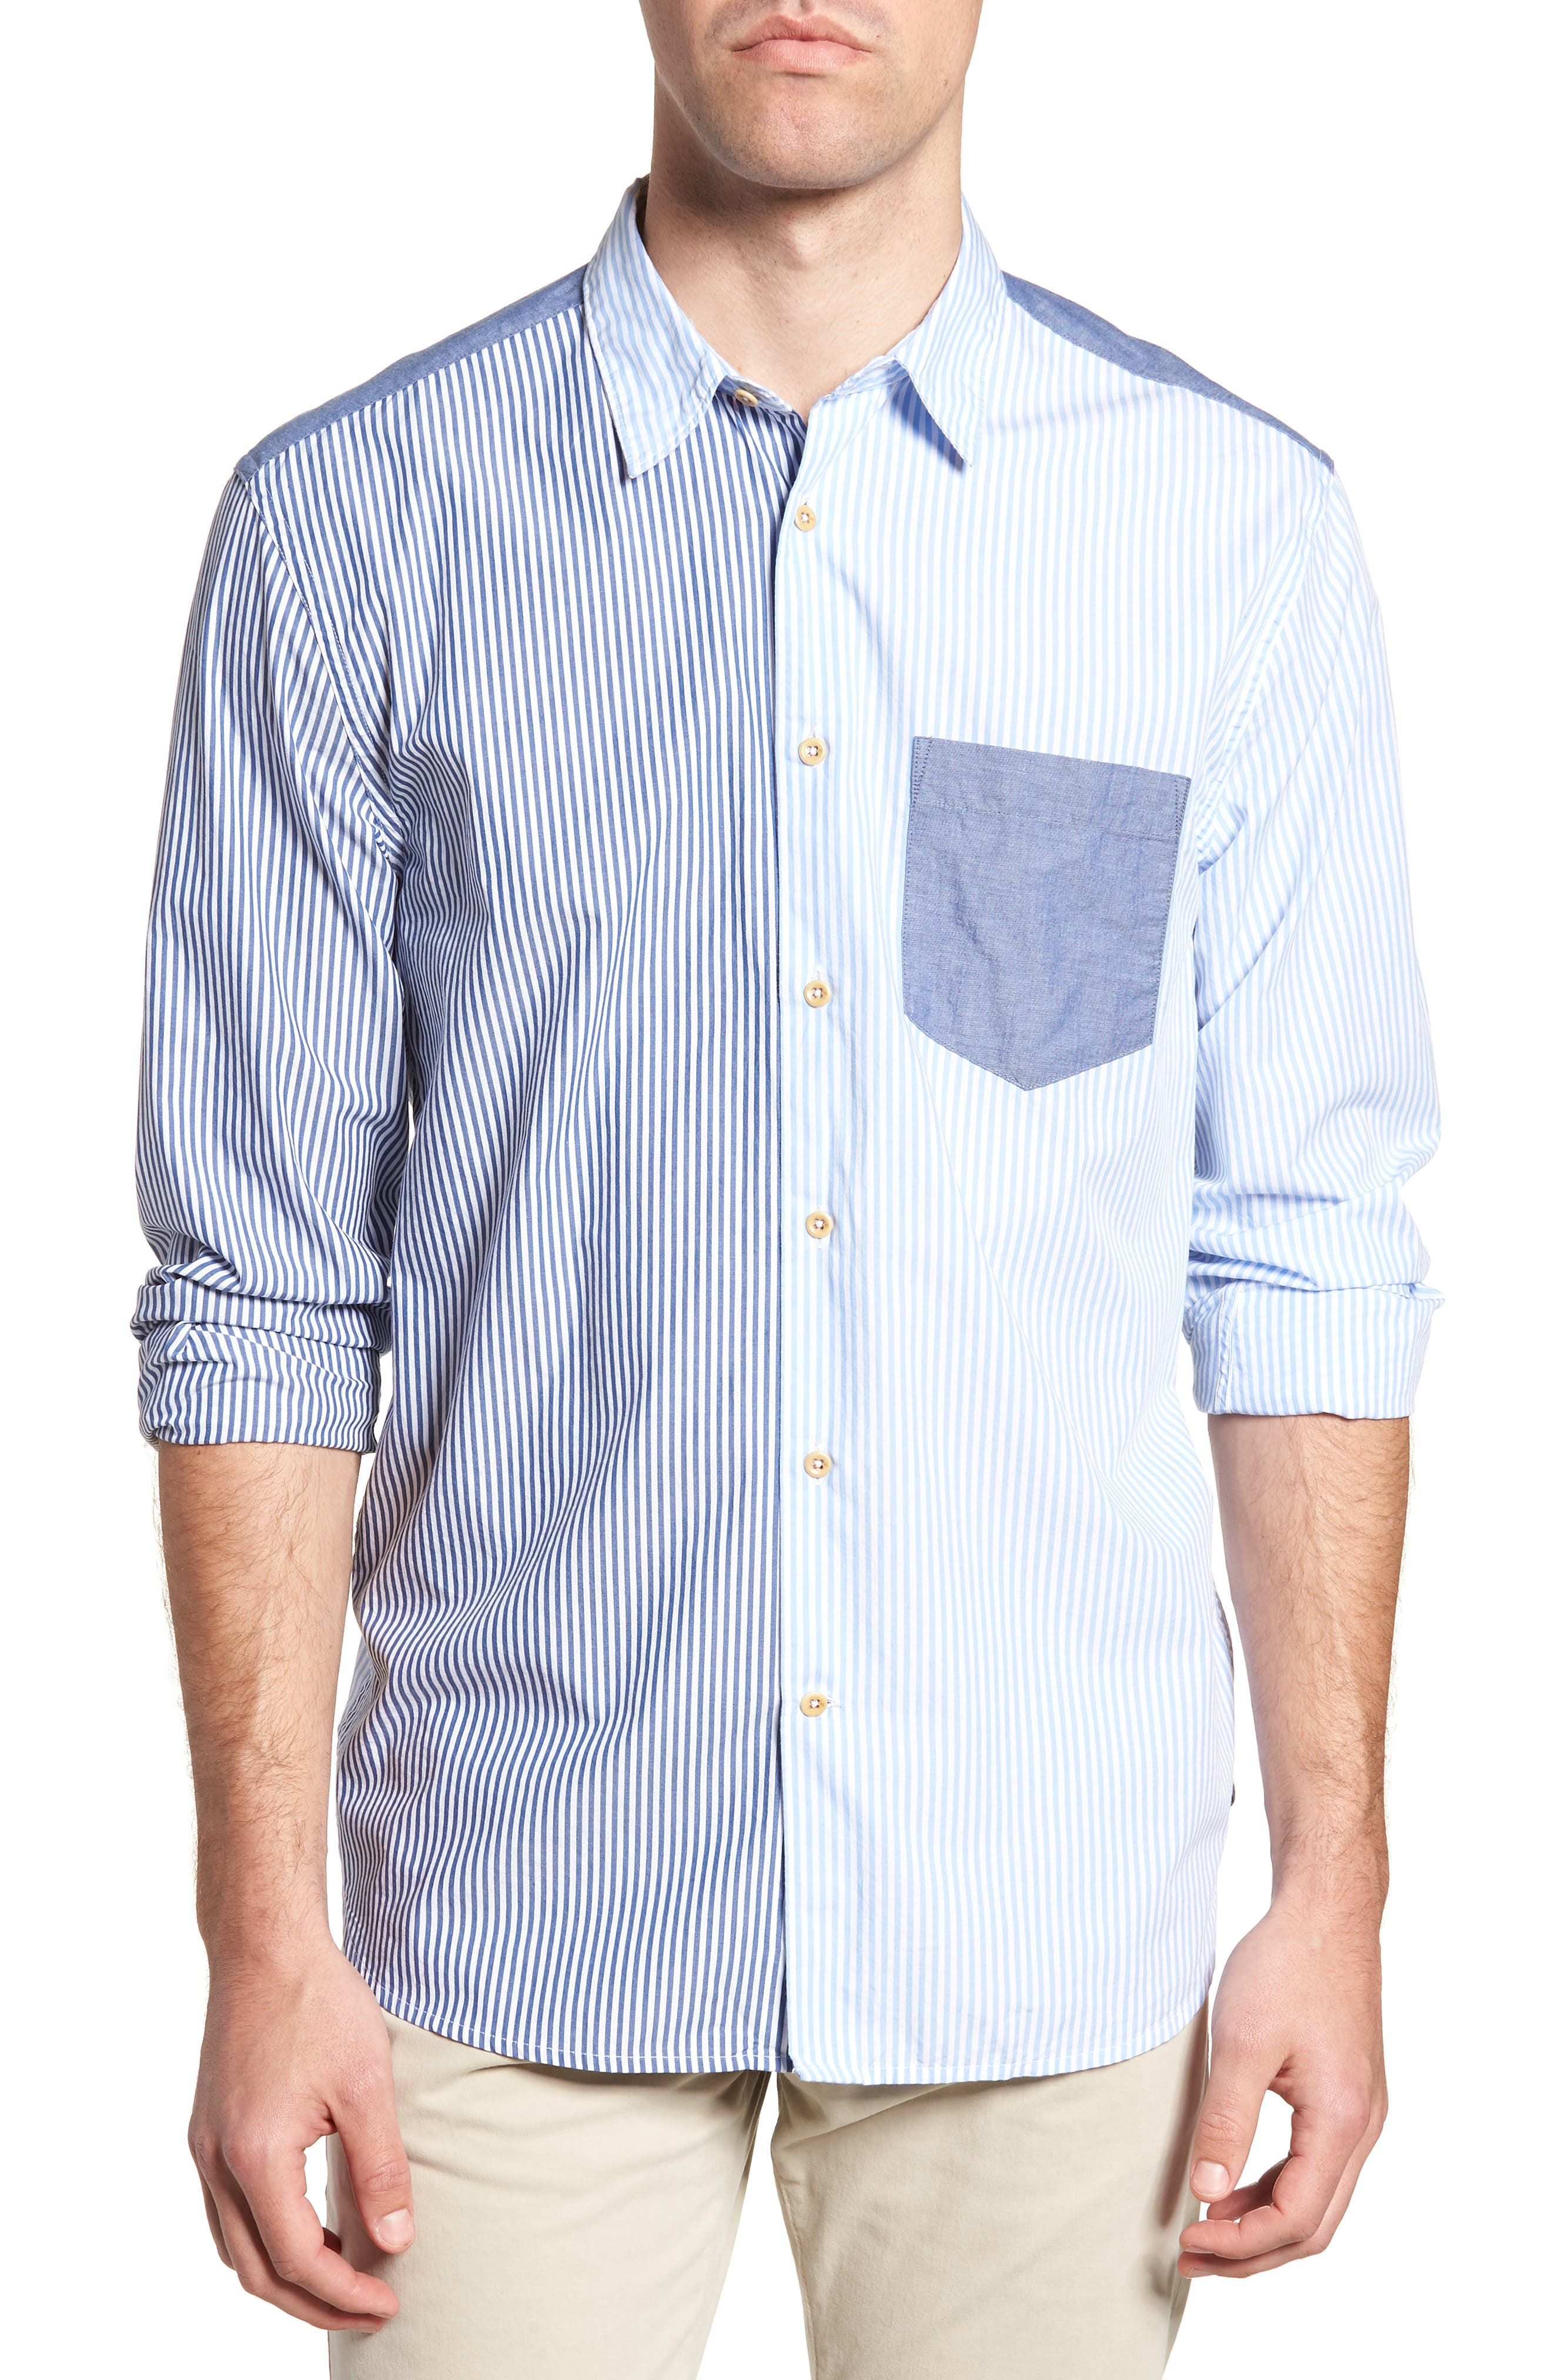 Patchwork Relaxed Fit Sport Shirt,                             Main thumbnail 1, color,                             416